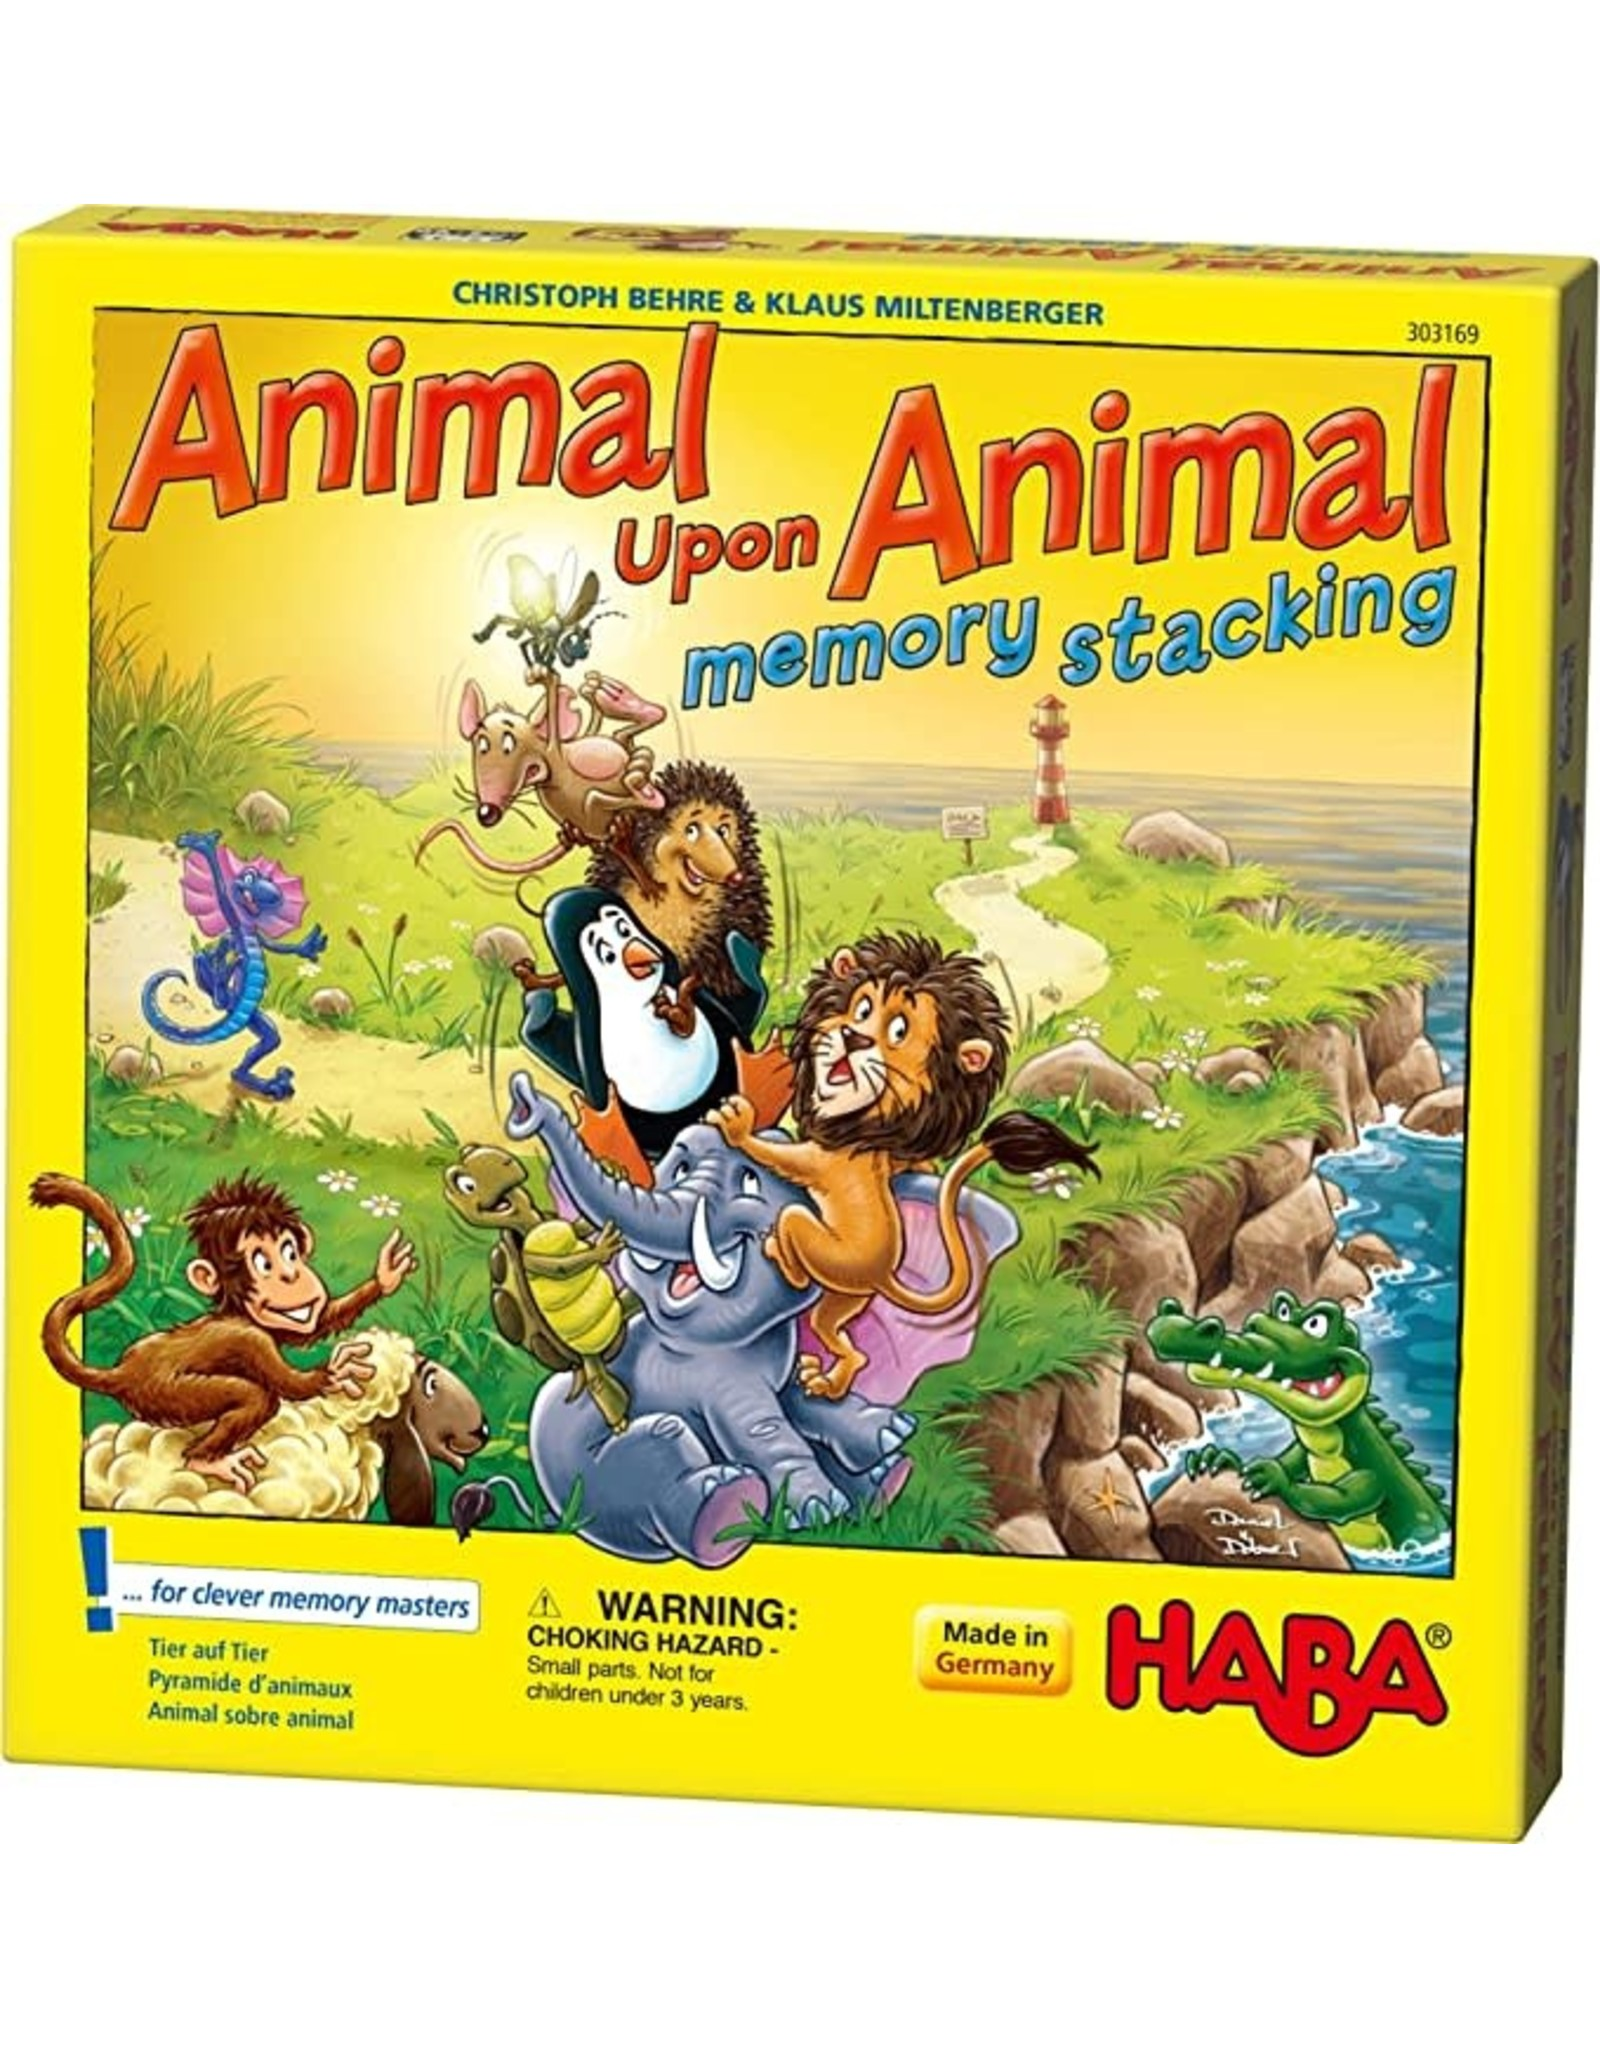 Haba Animal Upon Animal Memory Stacking